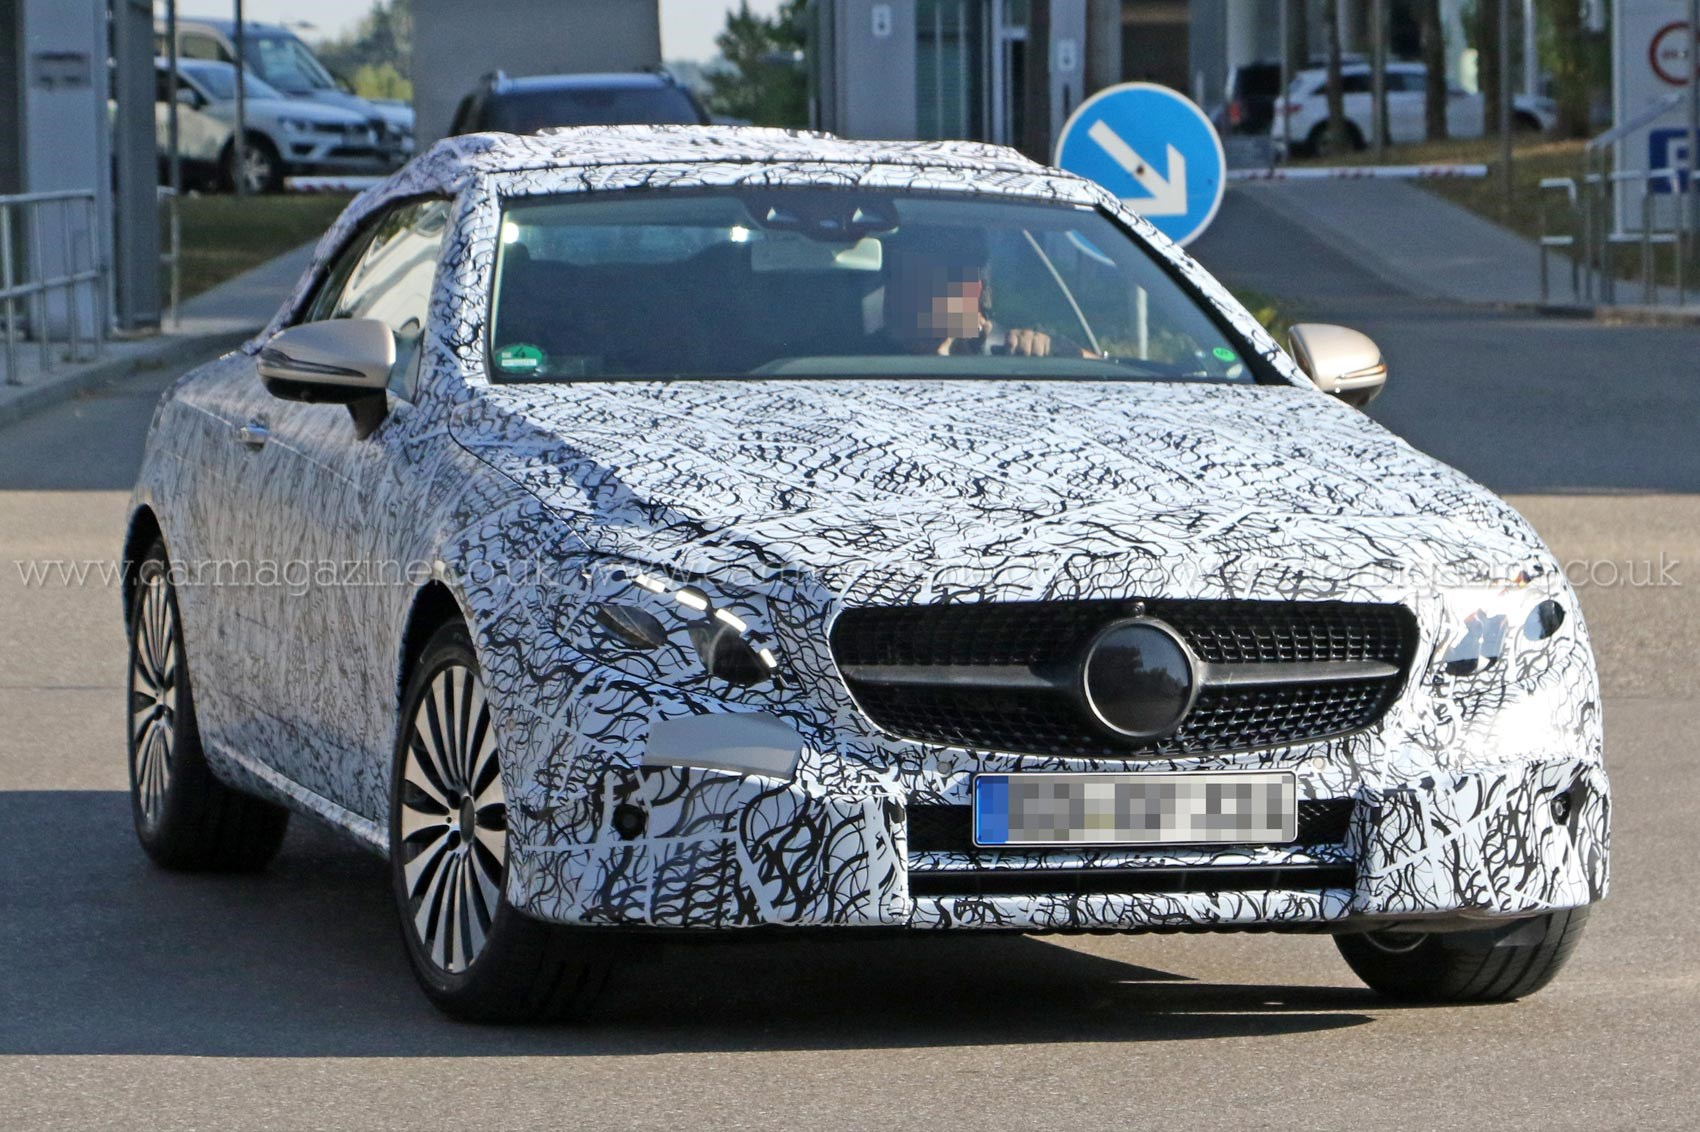 92 A Spy Shots Mercedes E Class First Drive